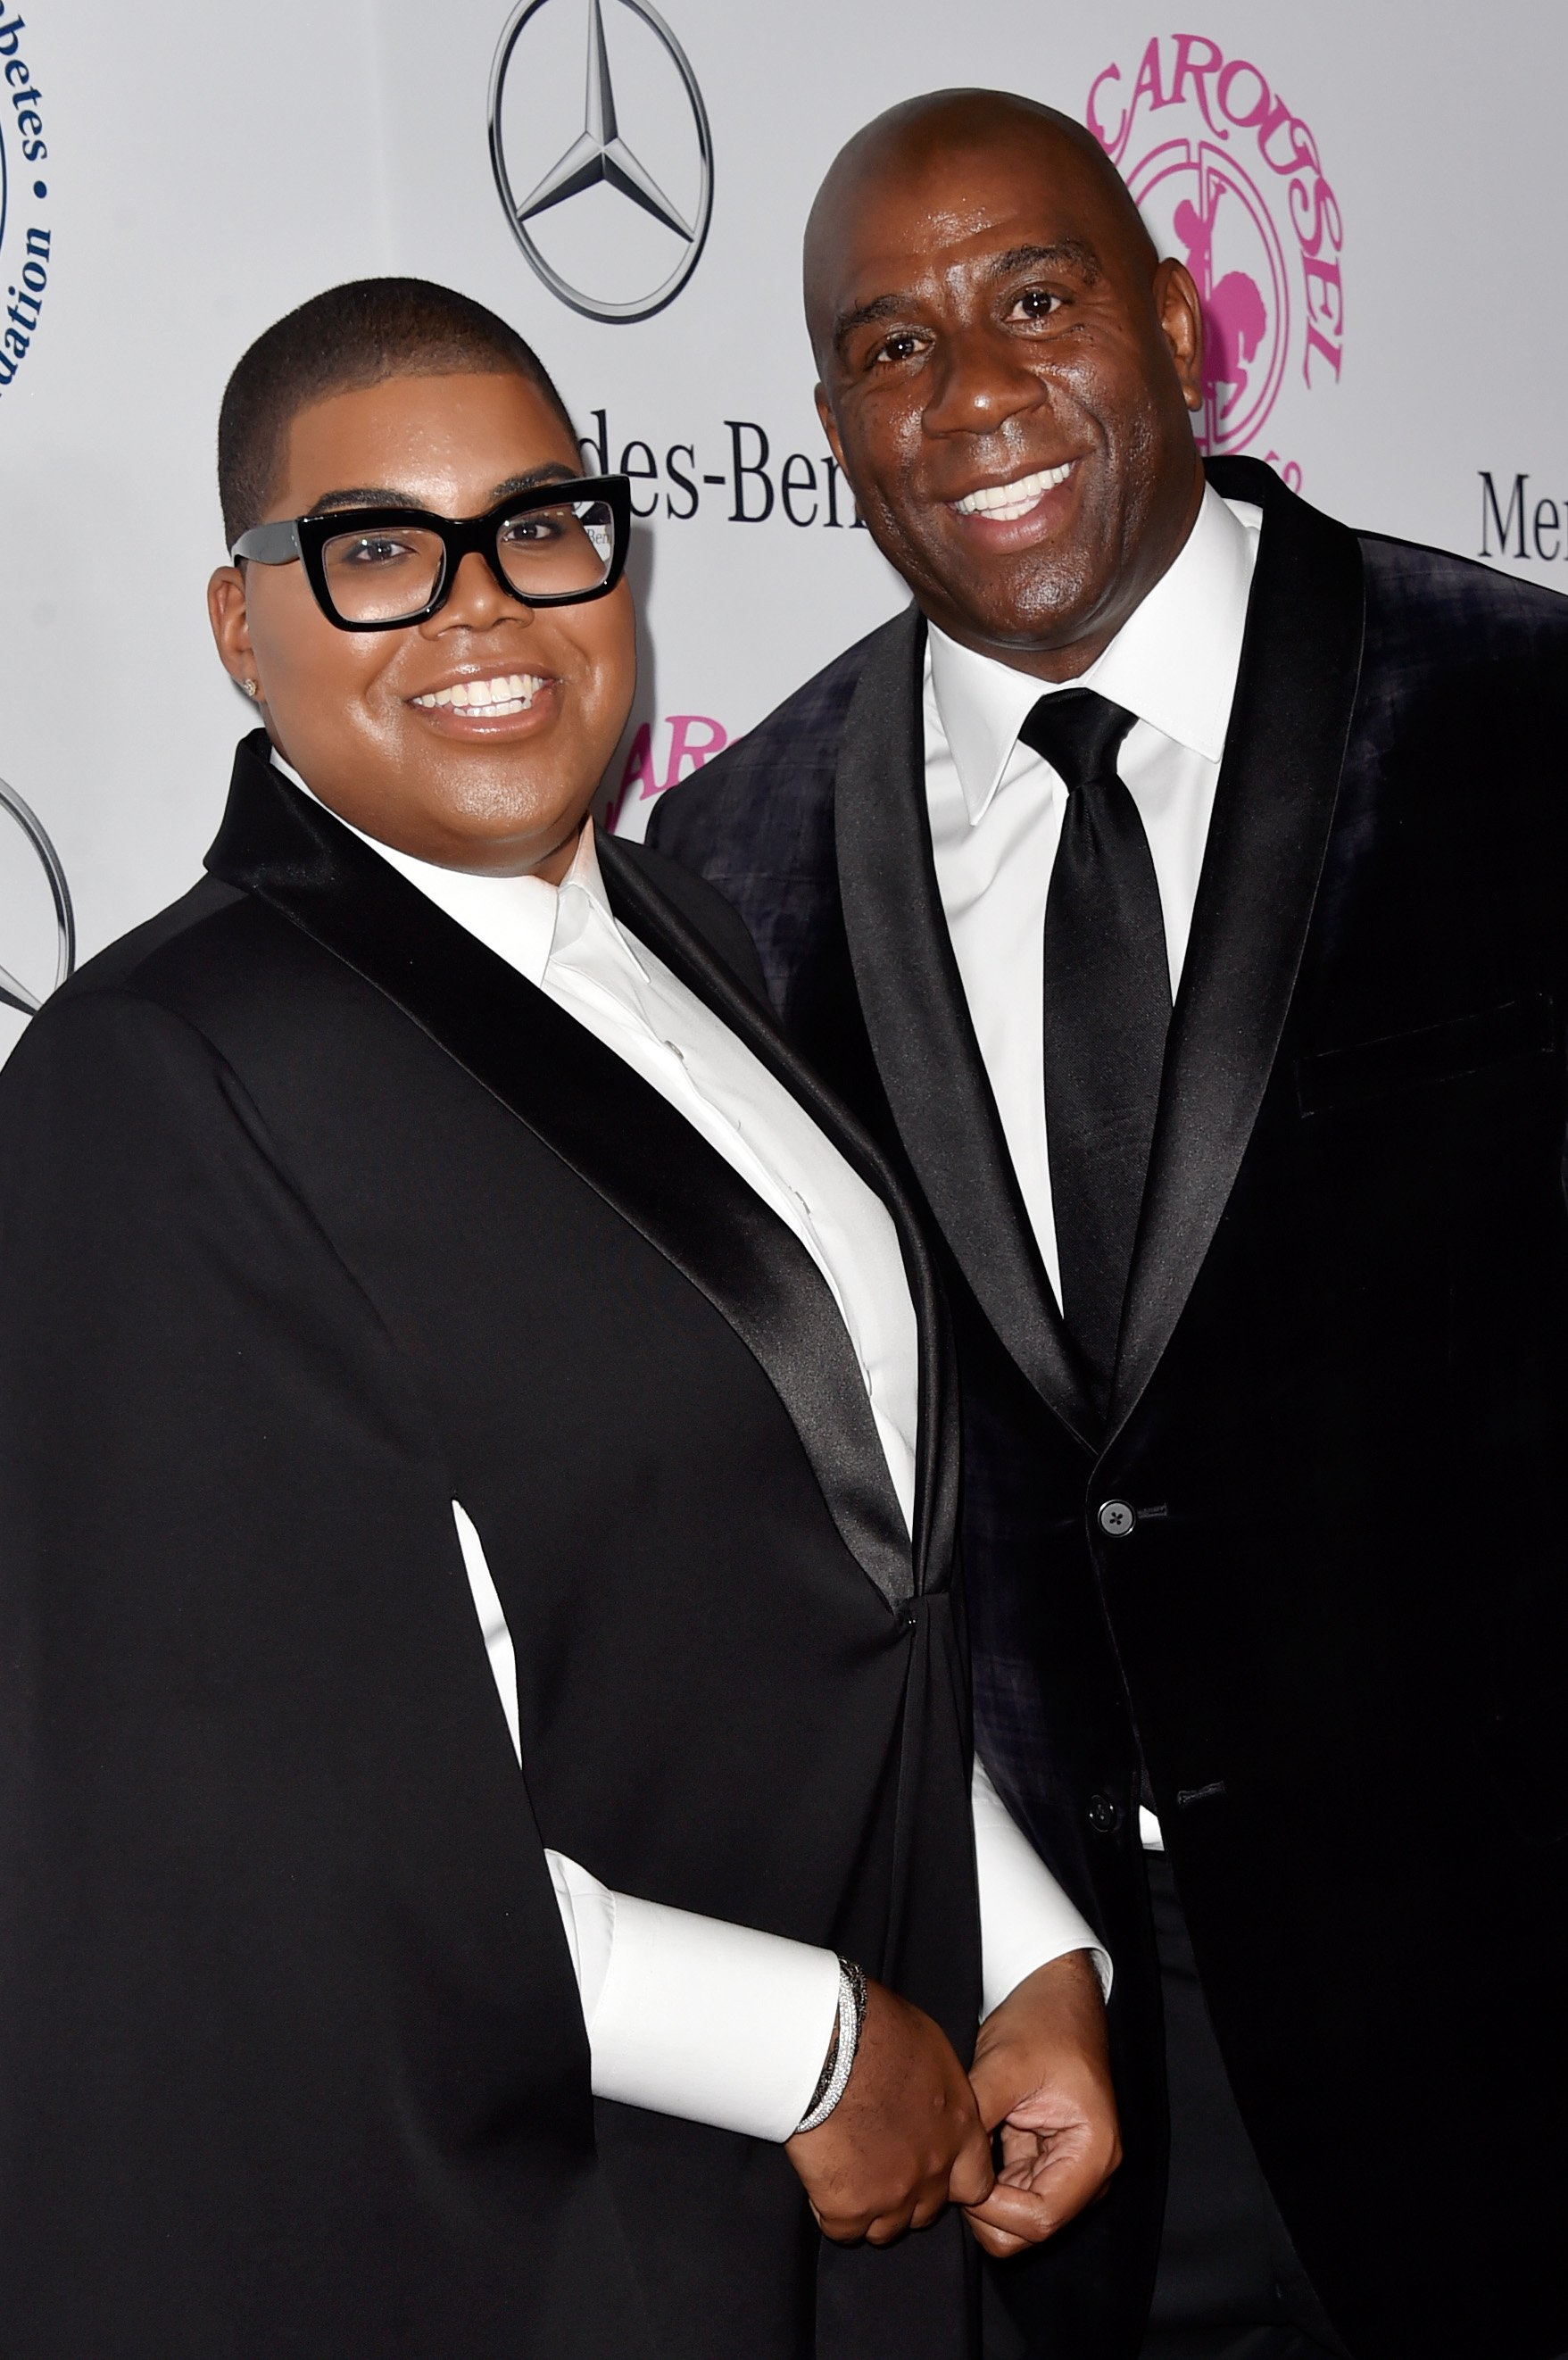 EJ Johnson & Magic Johnson at the 2014 Carousel of Hope Ball in Beverly Hills, California on Oct. 11, 2014 | Photo: Getty Images